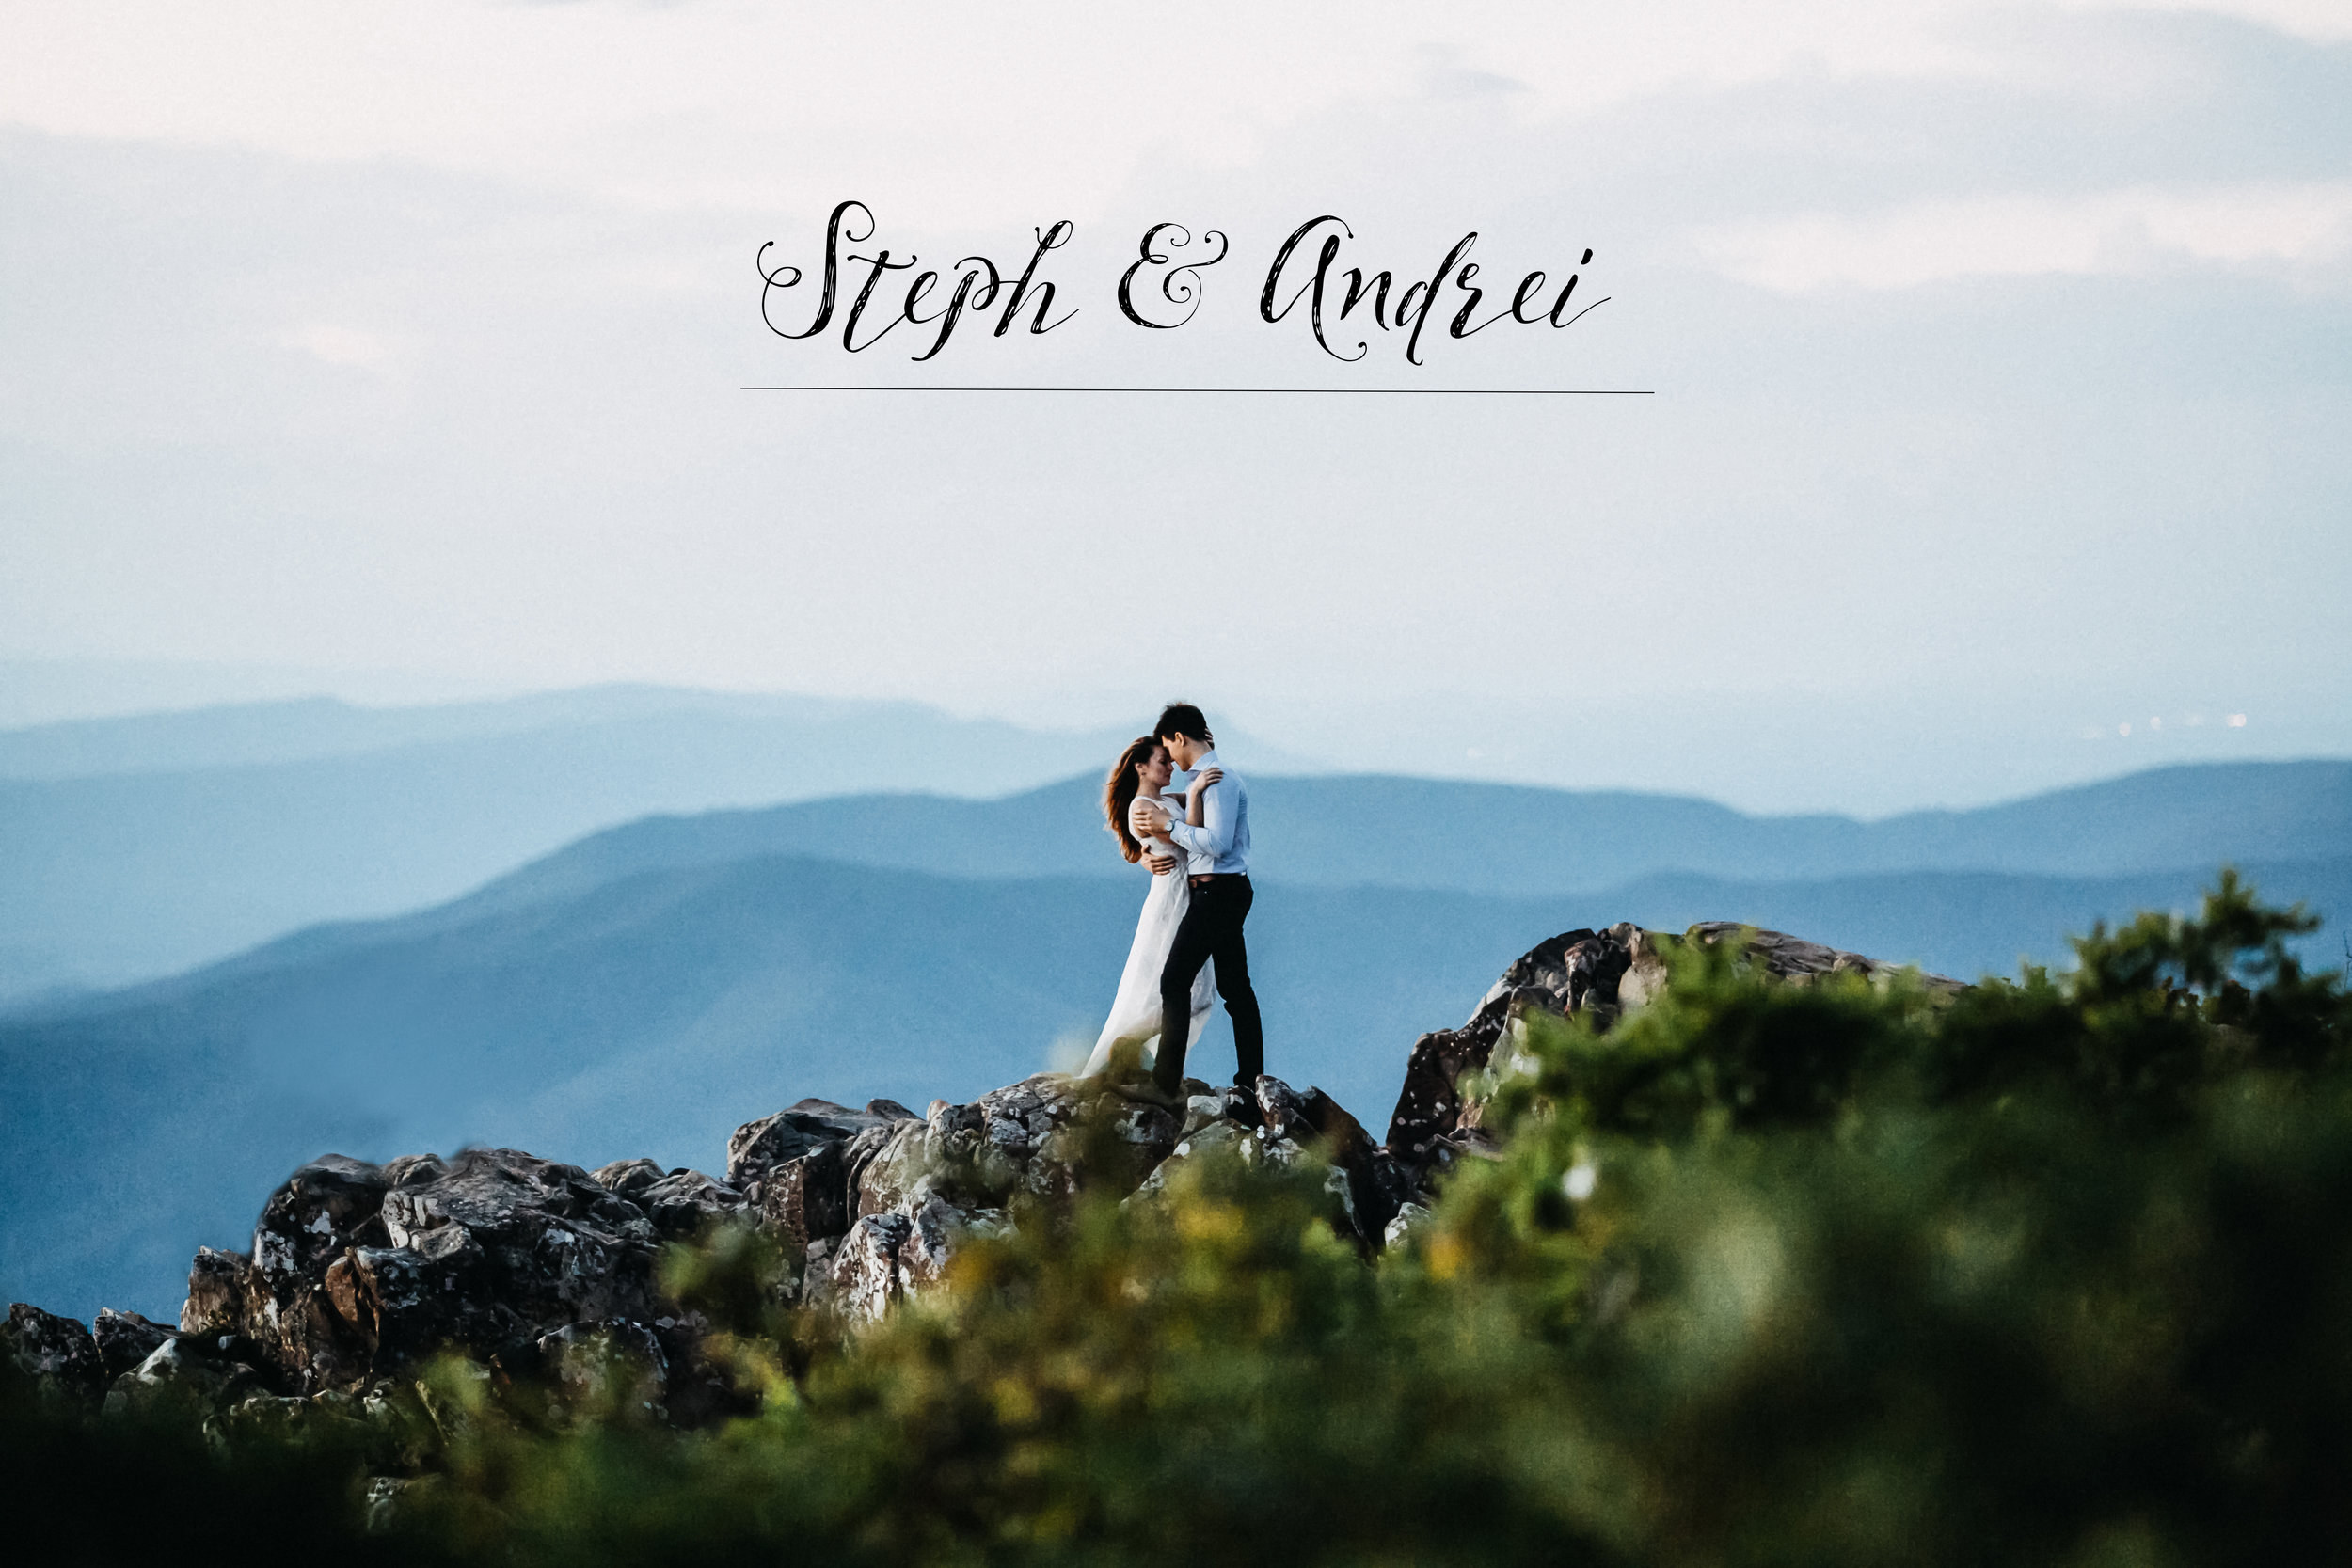 Steph & Andrei {June 30, 2017}    Shenandoah, Virginia   Be inspired by love and passion these two shared with each other on the top of the Shenandoah mountain.  As a storyteller, I wish to capture essence of each moment before it disappears.  The the most precious smile she shares with him, a gentle touch of his hand in her hair to pull her closer for a kiss, a squeeze in his arms...